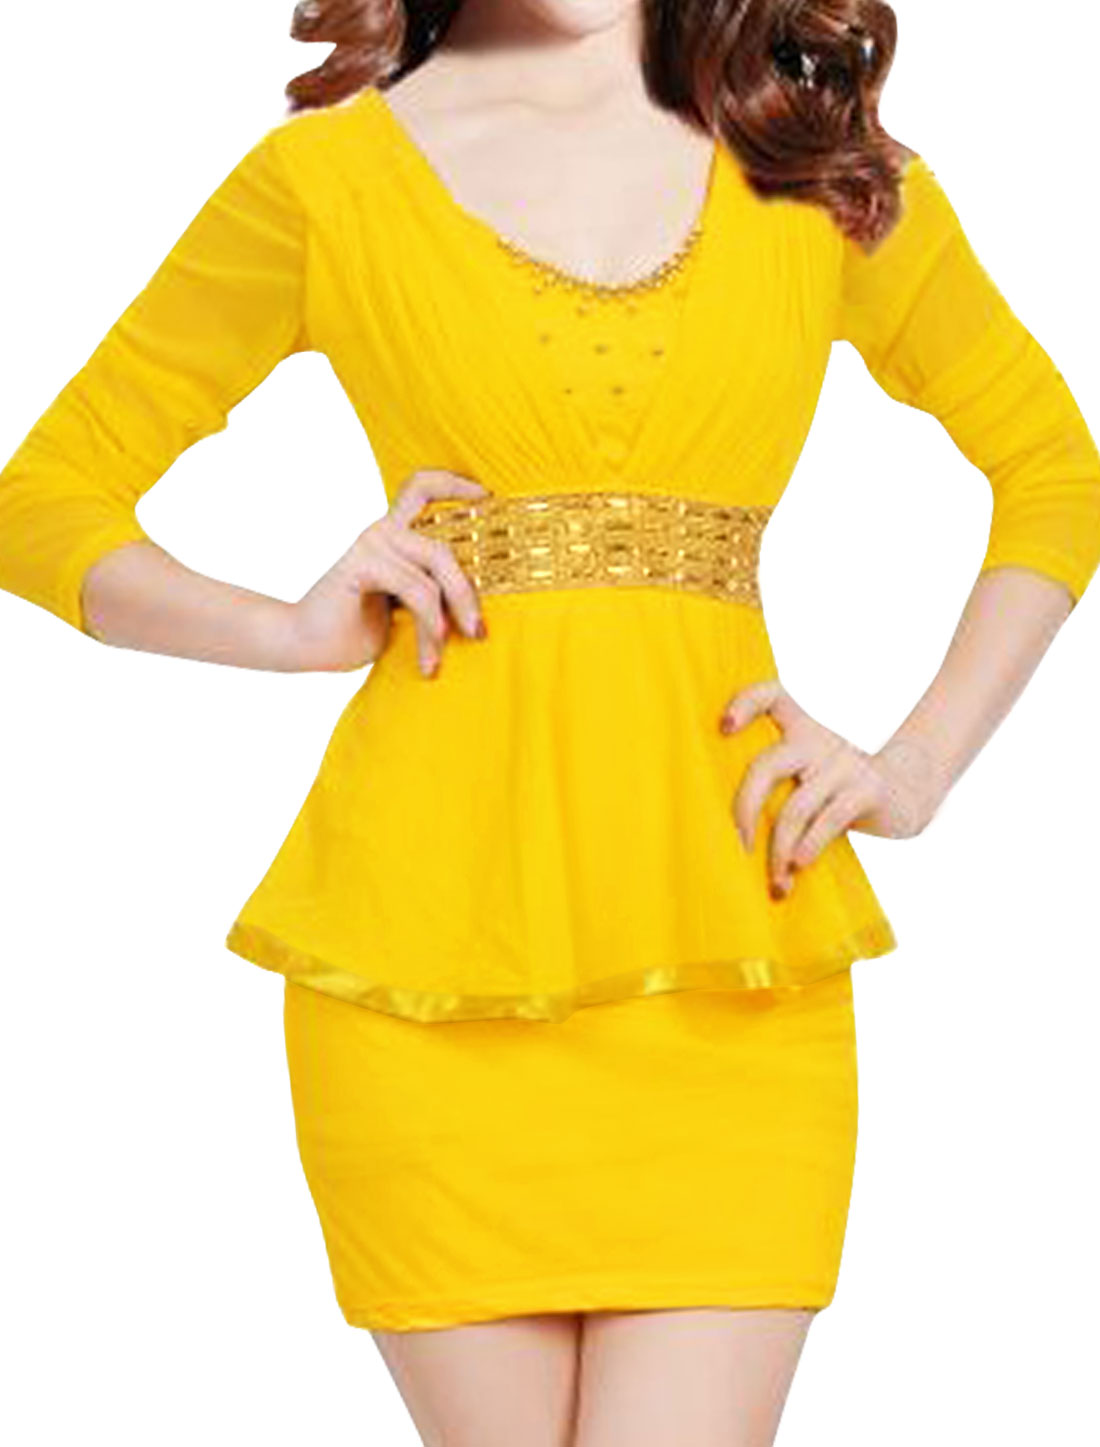 Women Beaded Rhinestone Decor Mesh Peplum Dress Yellow M